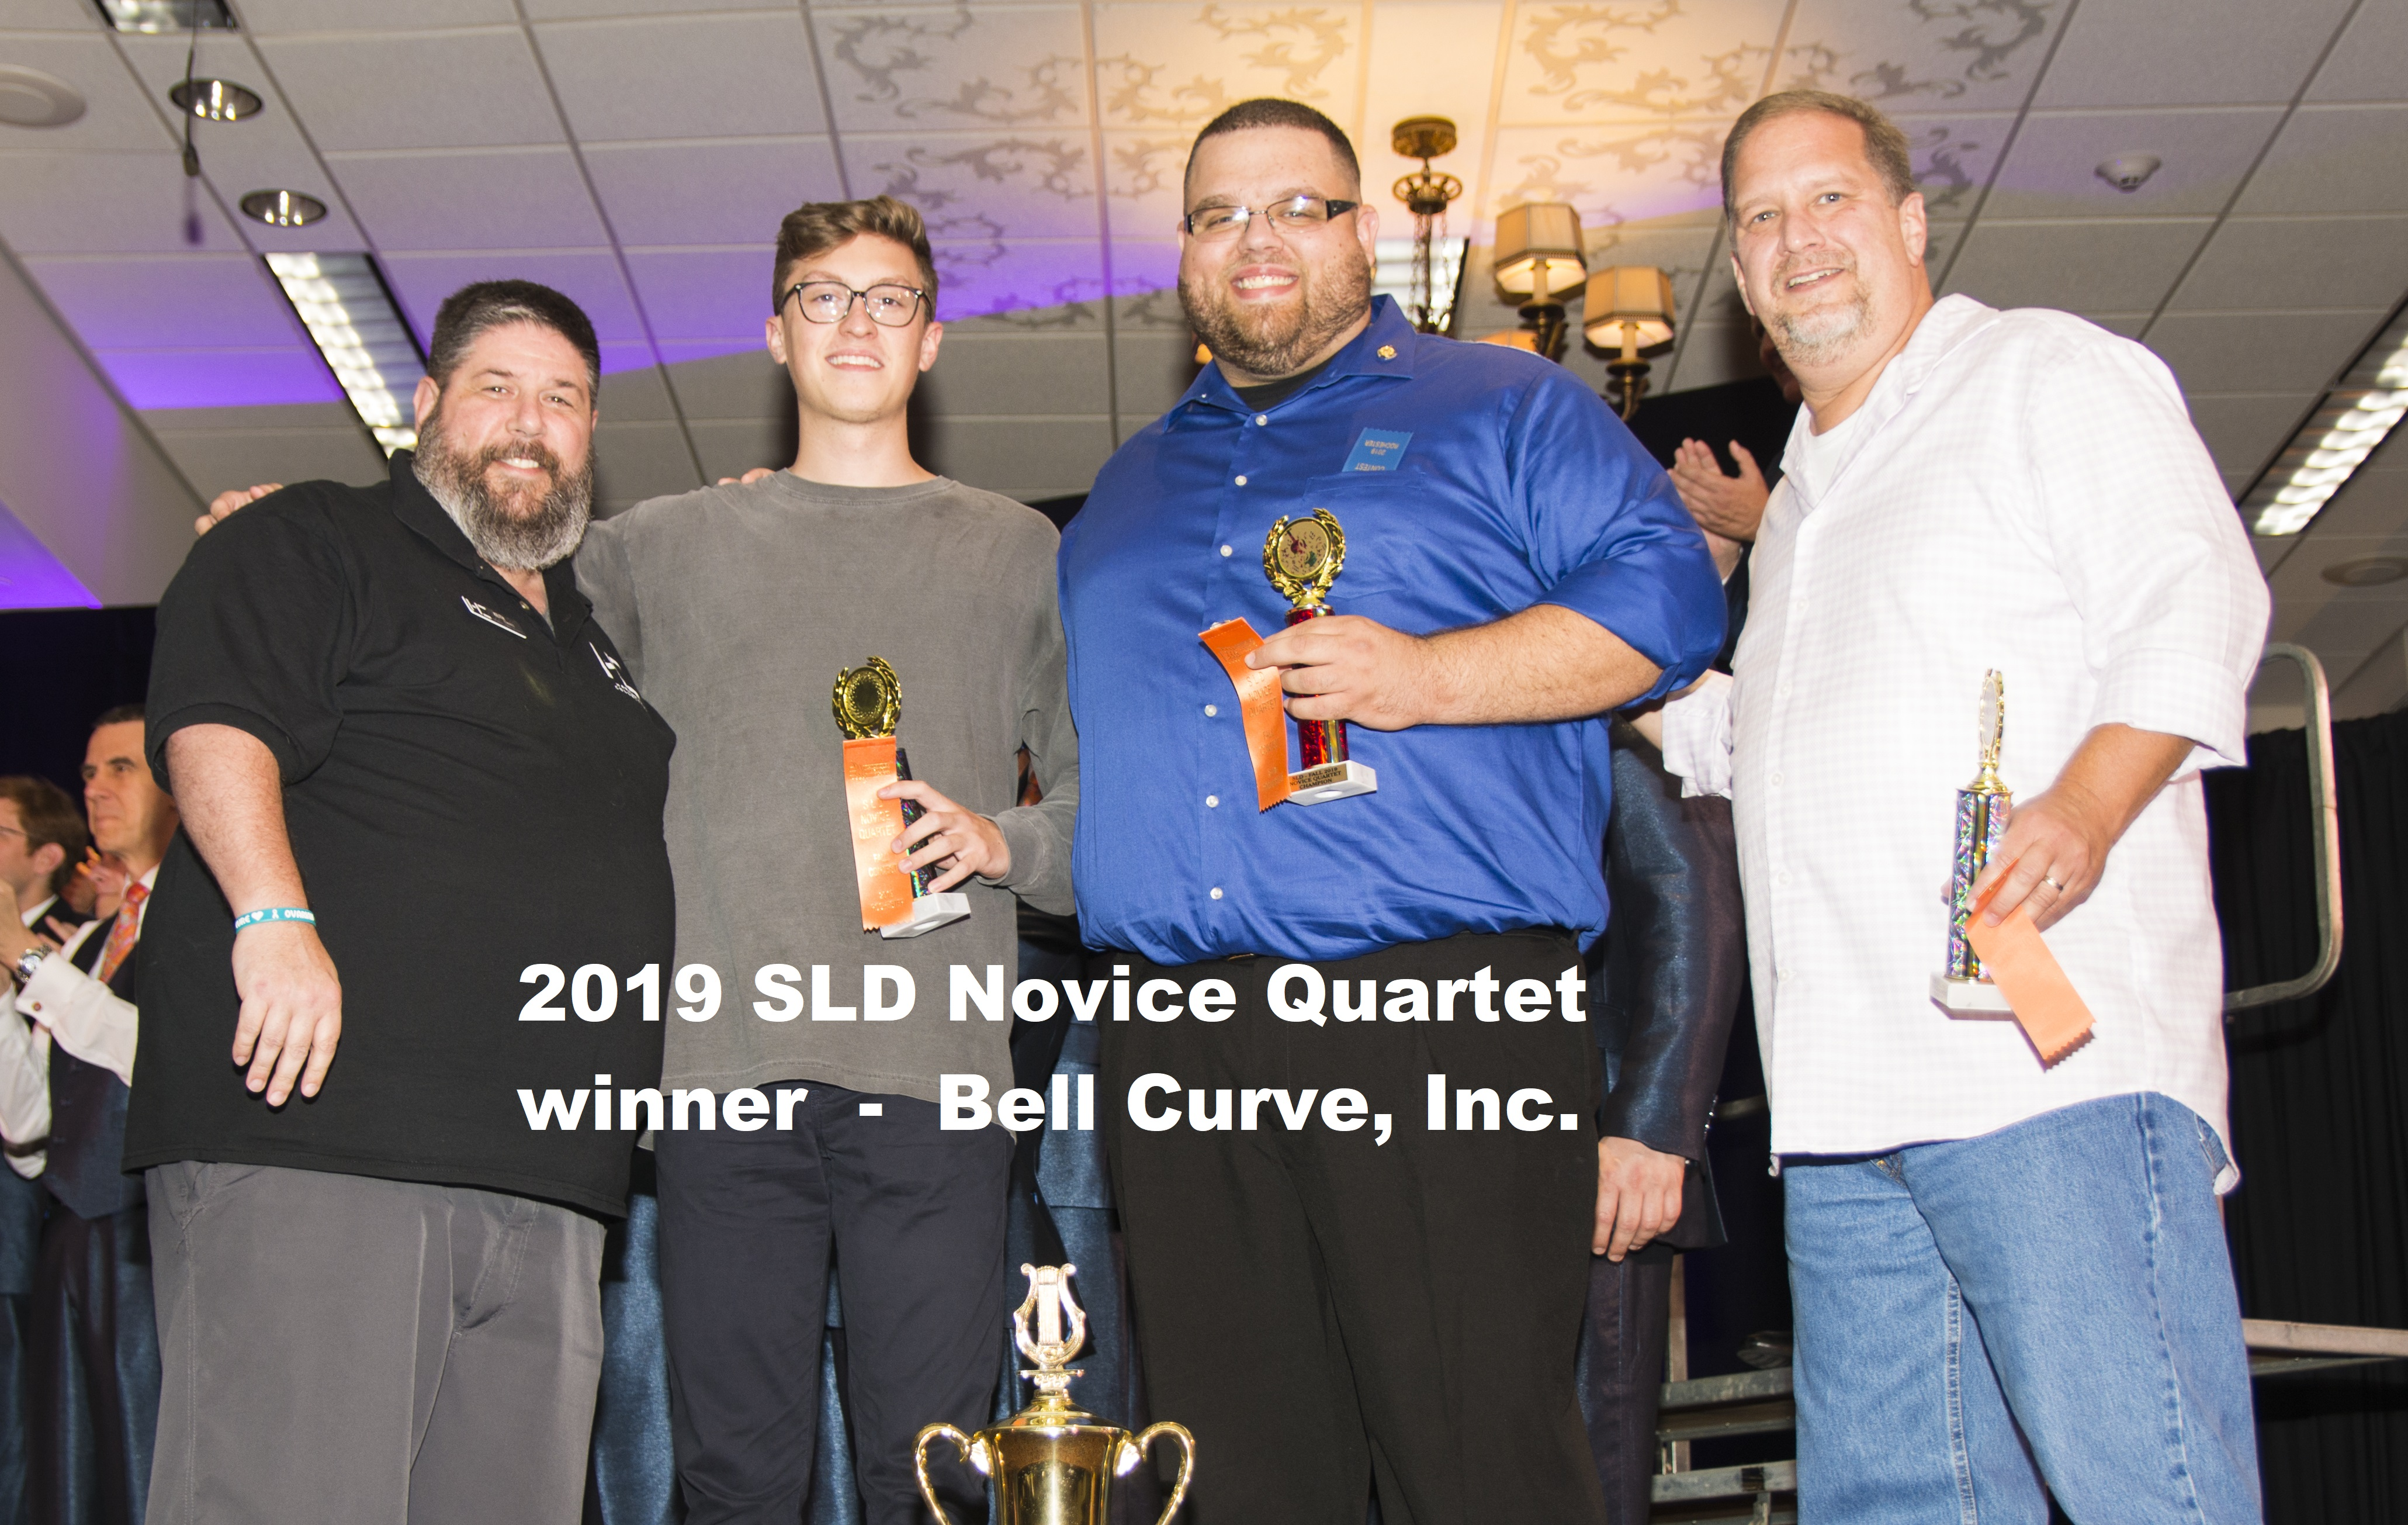 Bell Curve, Inc Novice Award